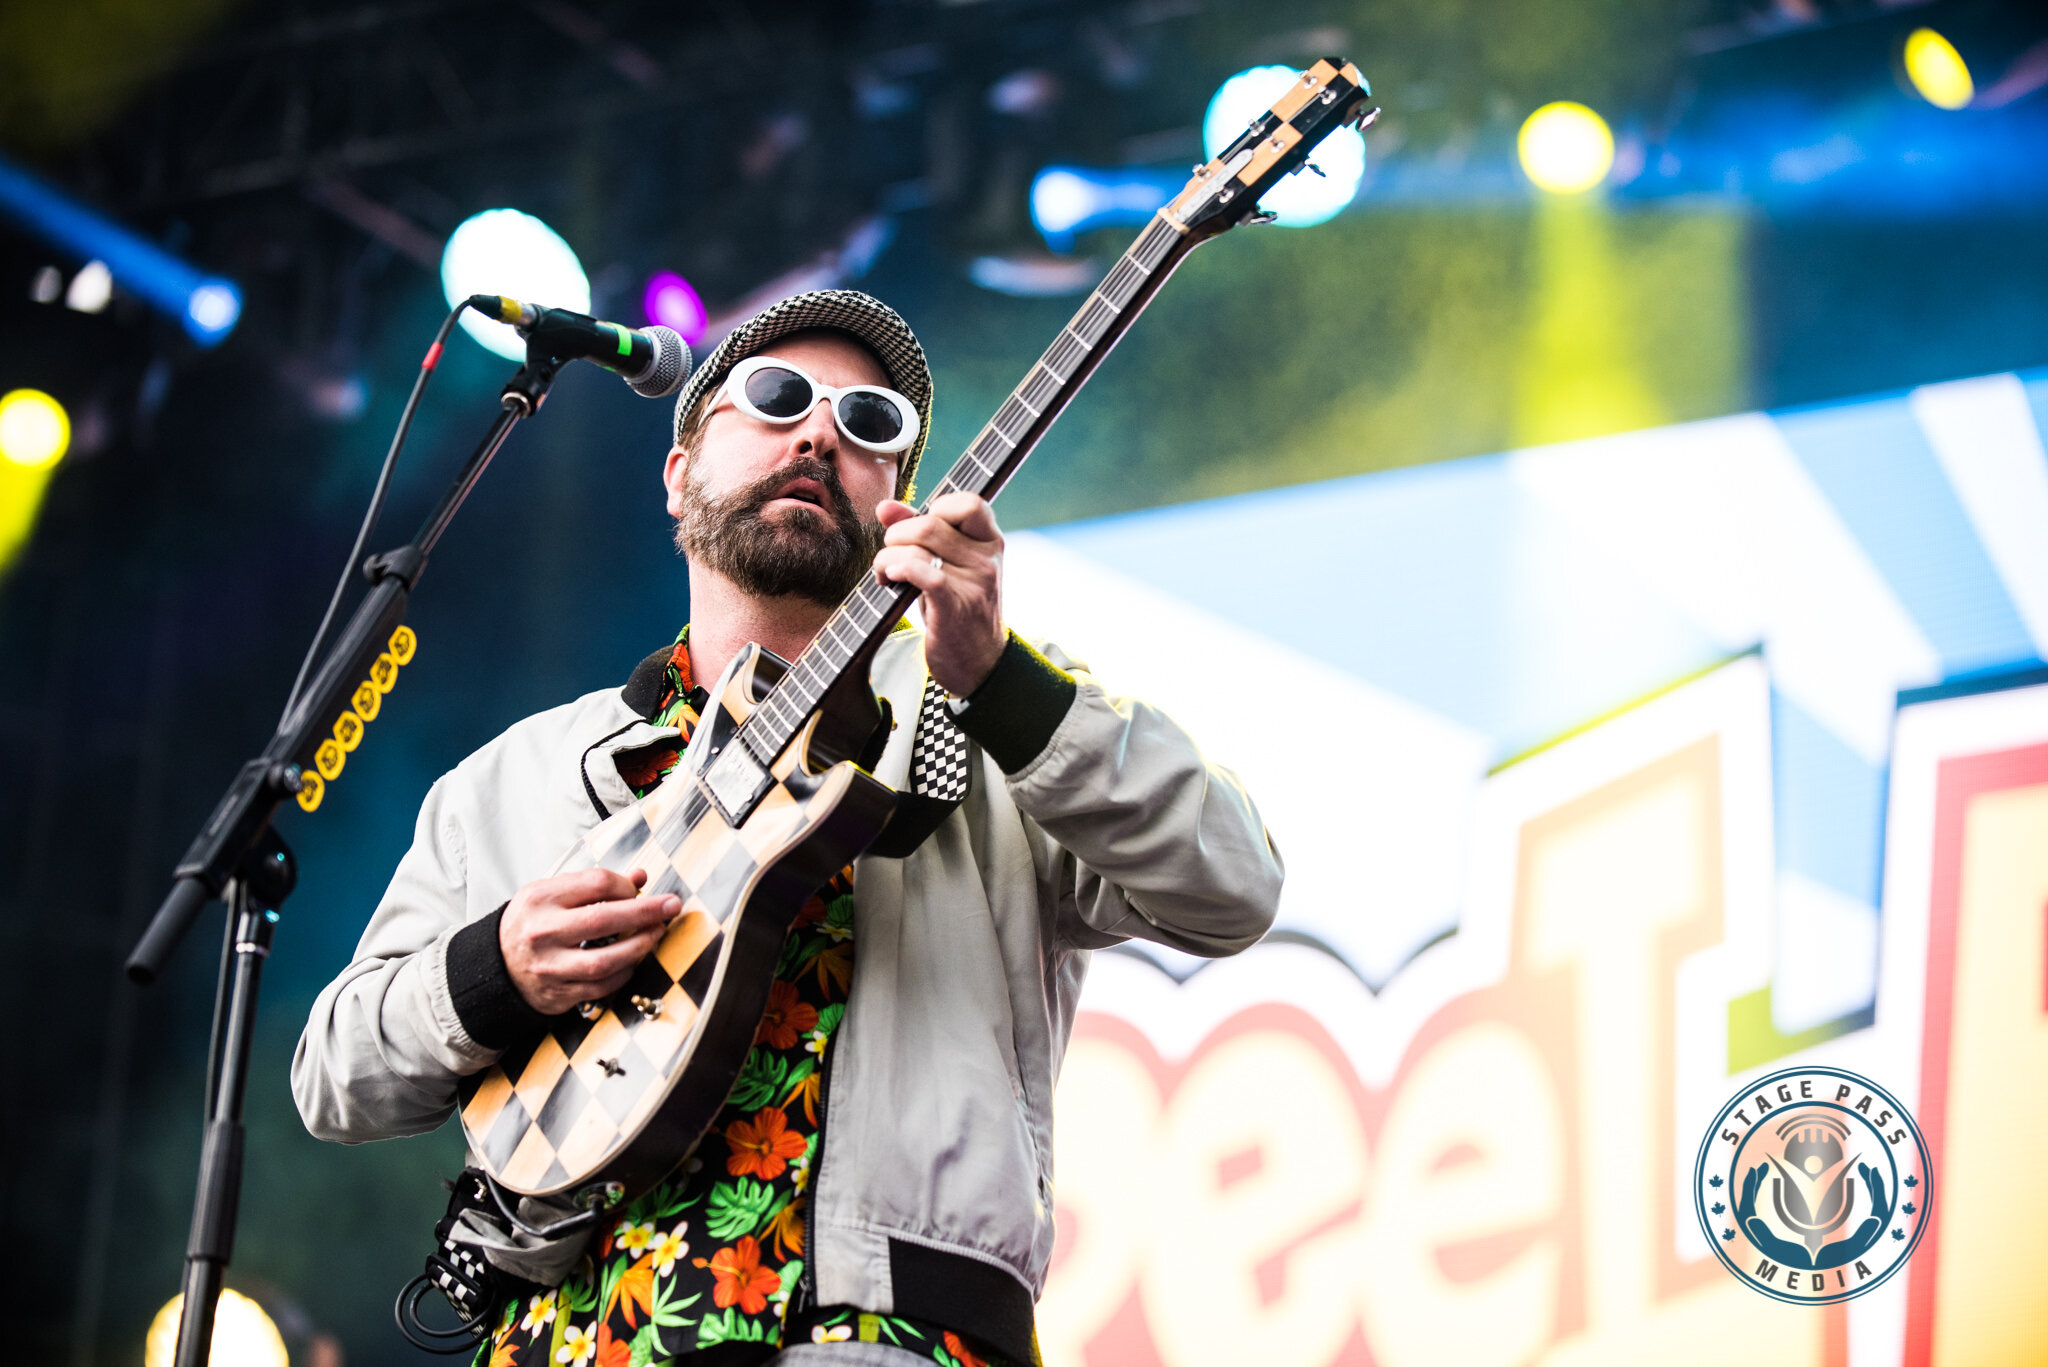 Reel Big Fish Park Jam Festival 2019  @kevinv1981 - Stage Pass Media